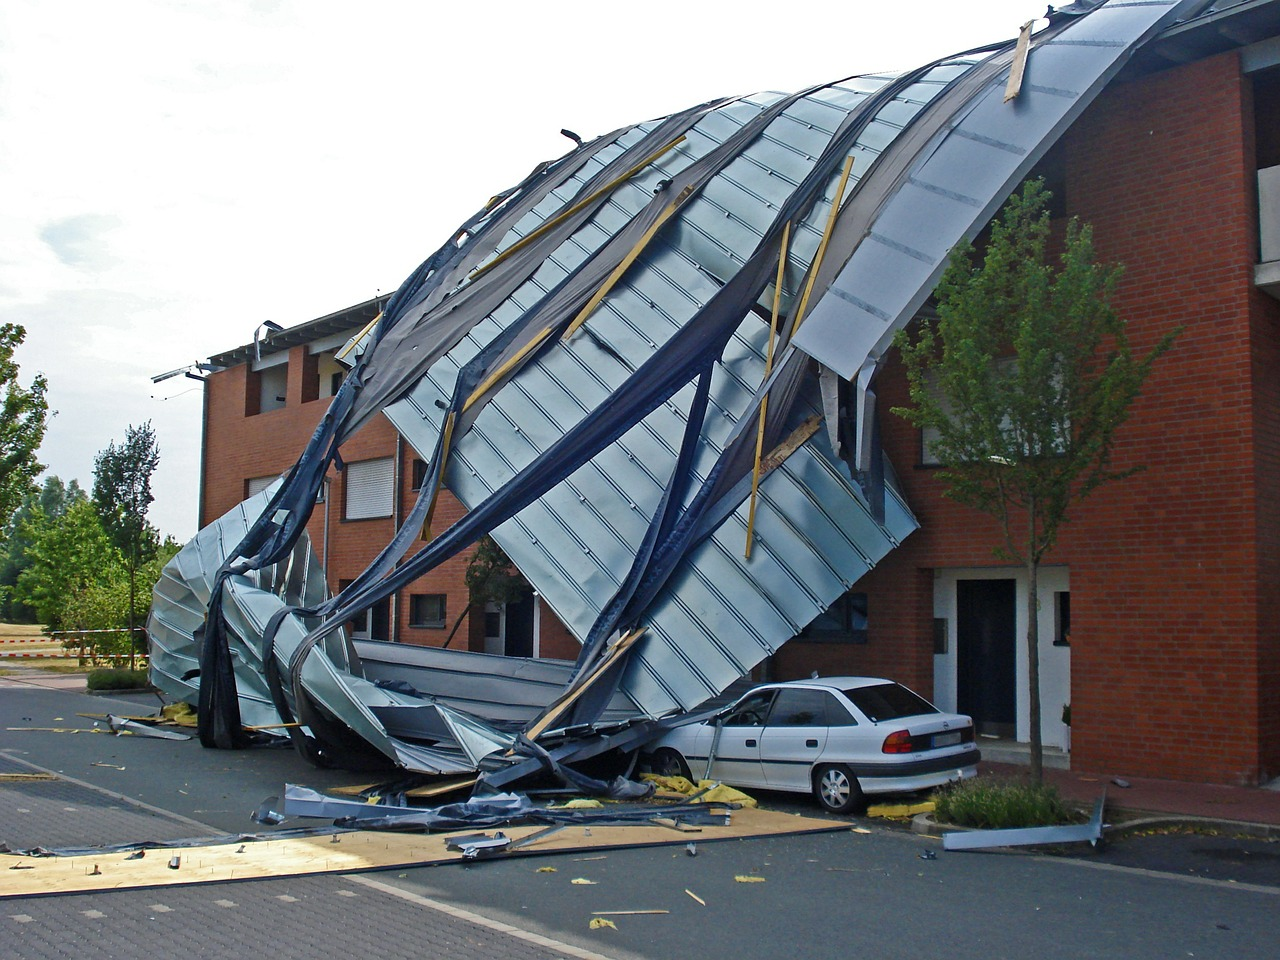 Experts warn us not to skimp on buildings insurance